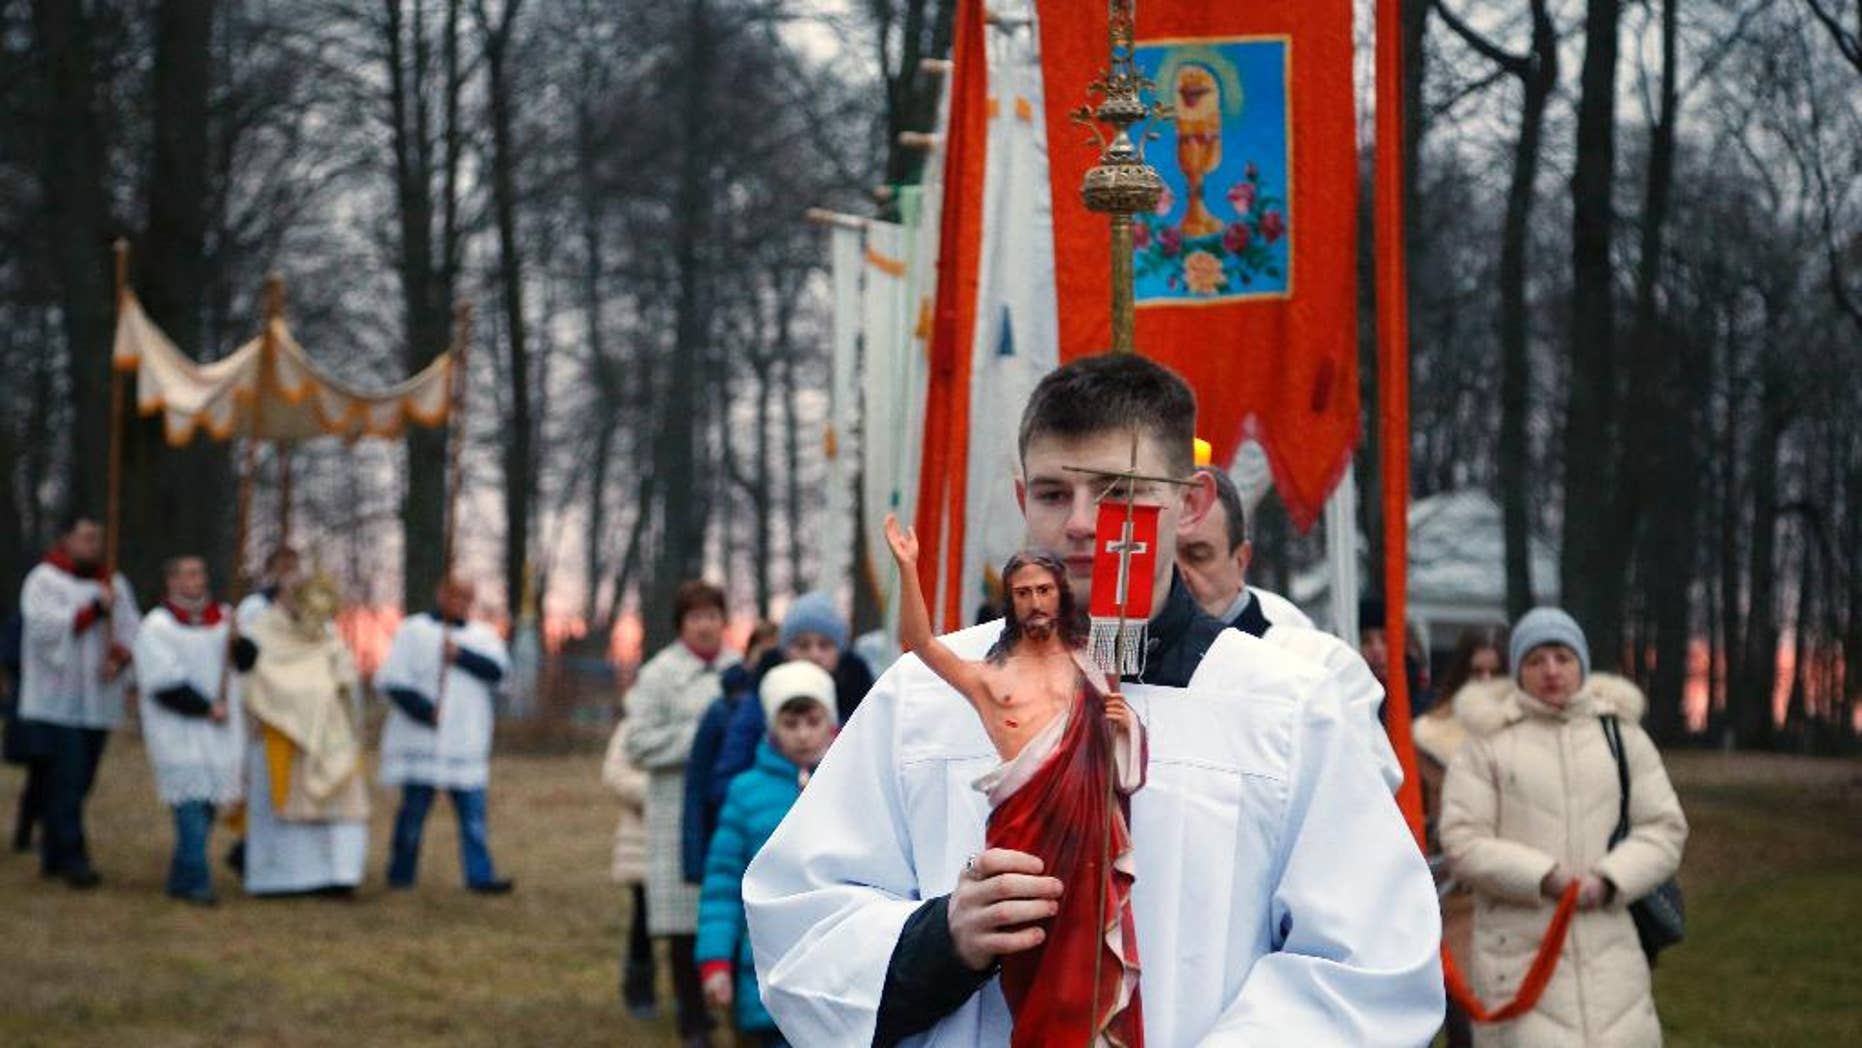 Devotees carry gonfalons during Easter Sunday rites in the village of Vselyub, 150 kilometers (93 miles) west of Minsk, Belarus, Sunday, March 27, 2016. (AP Photo/Sergei Grits)